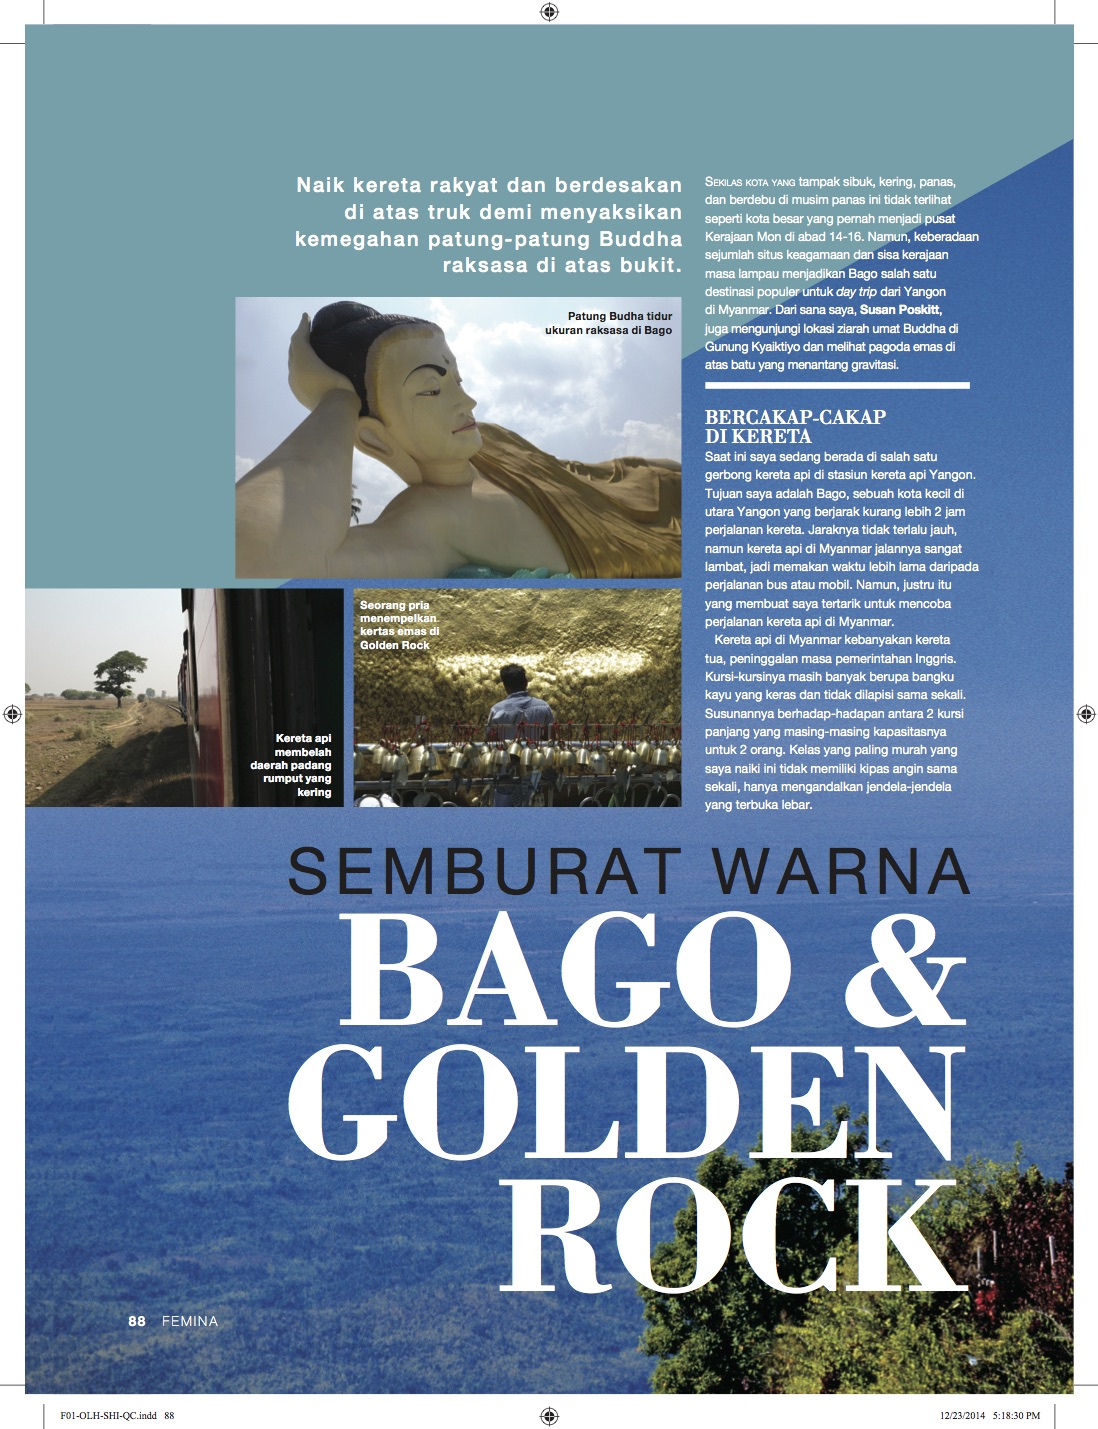 Bago & Golden Rock - Majalah Femina - Januari 2015